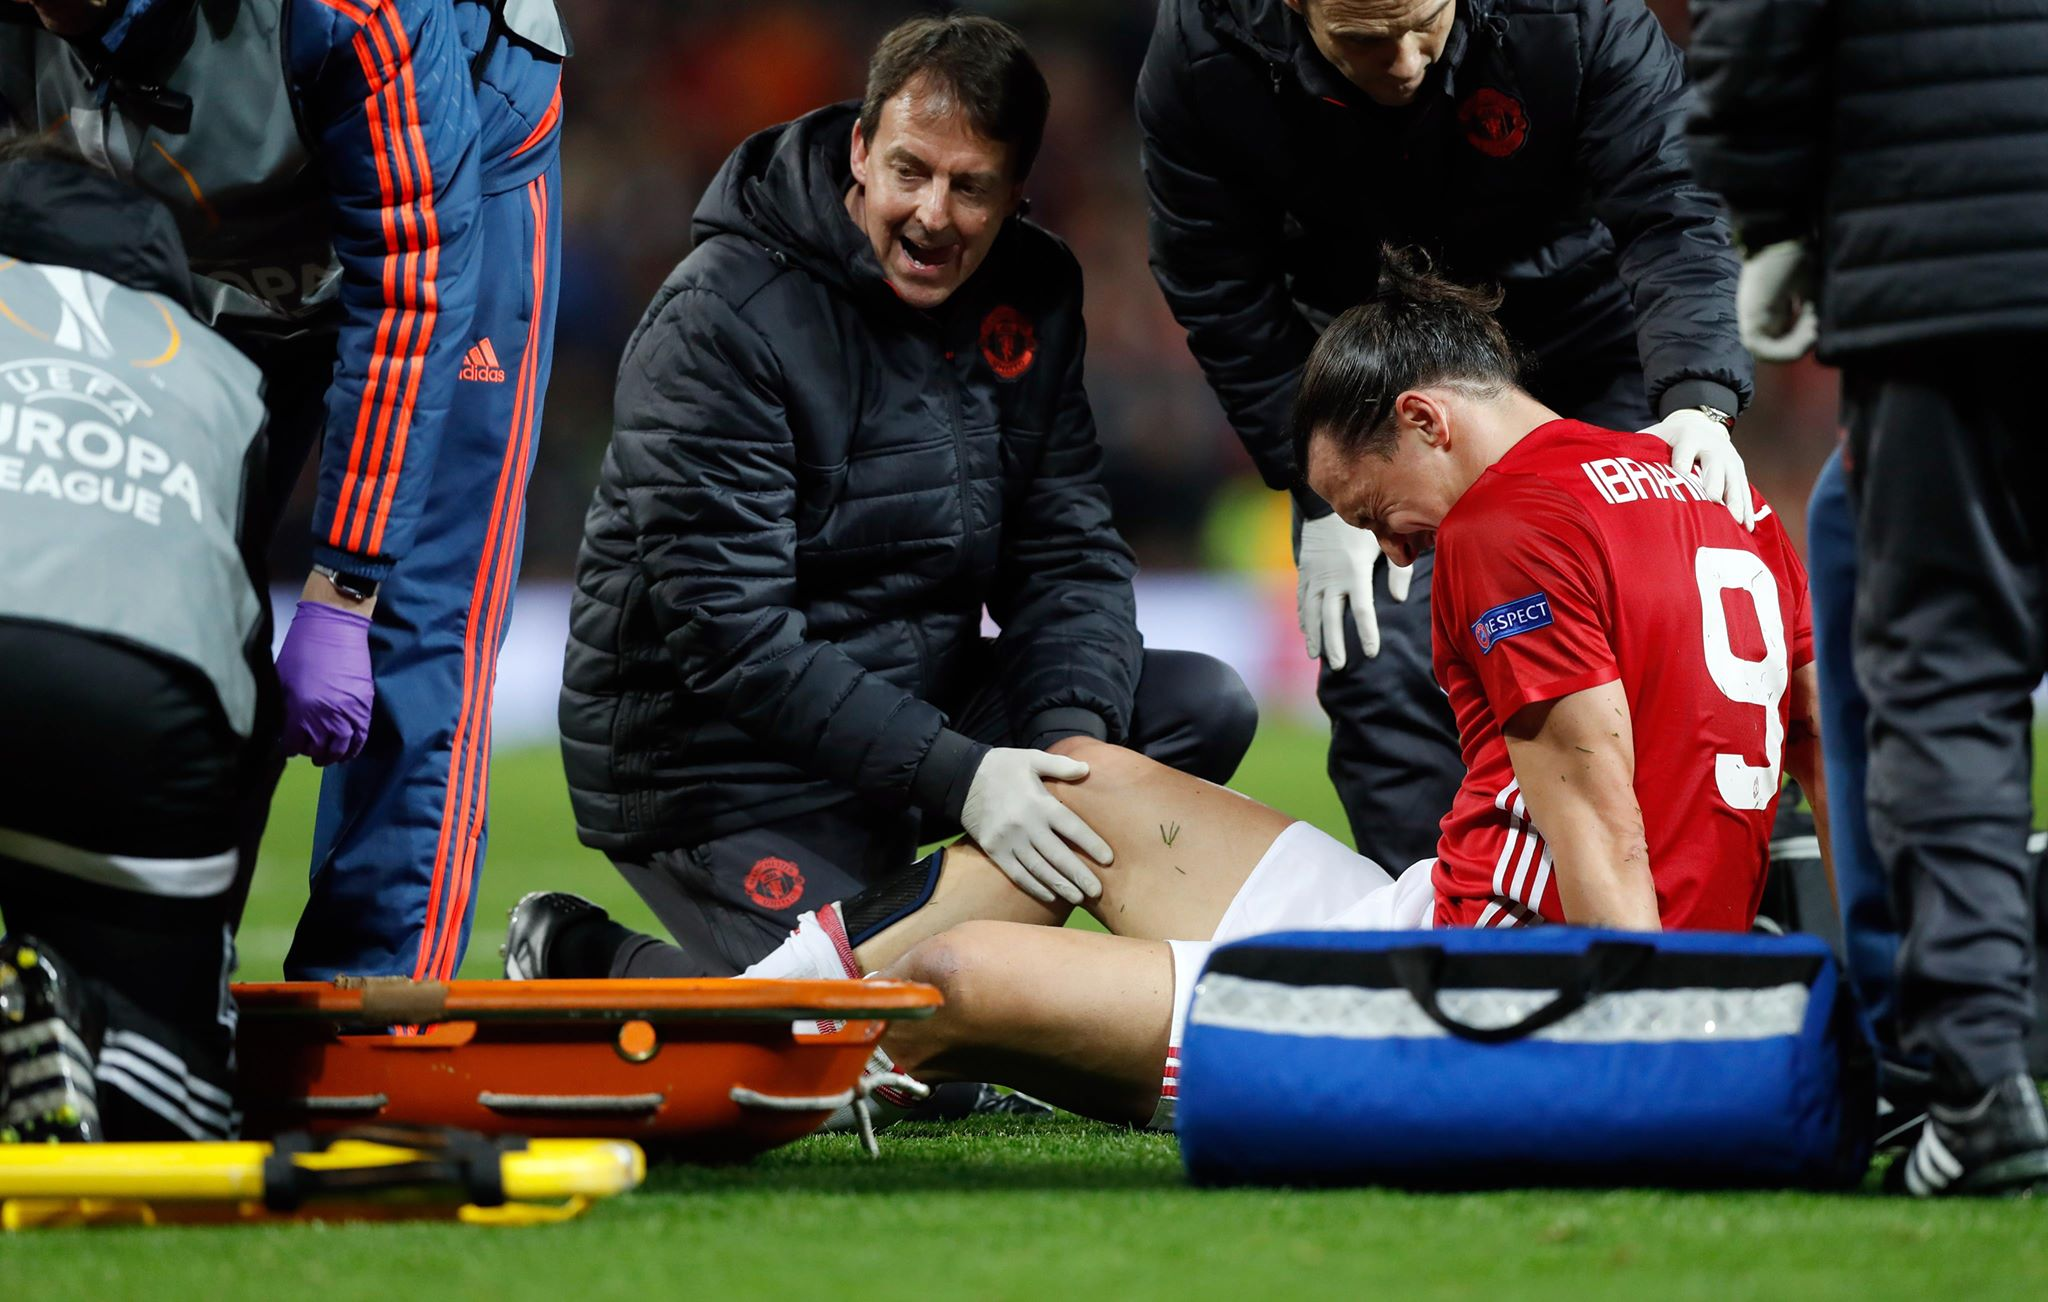 Ibhrahimovic stricken on the floor. Image PA